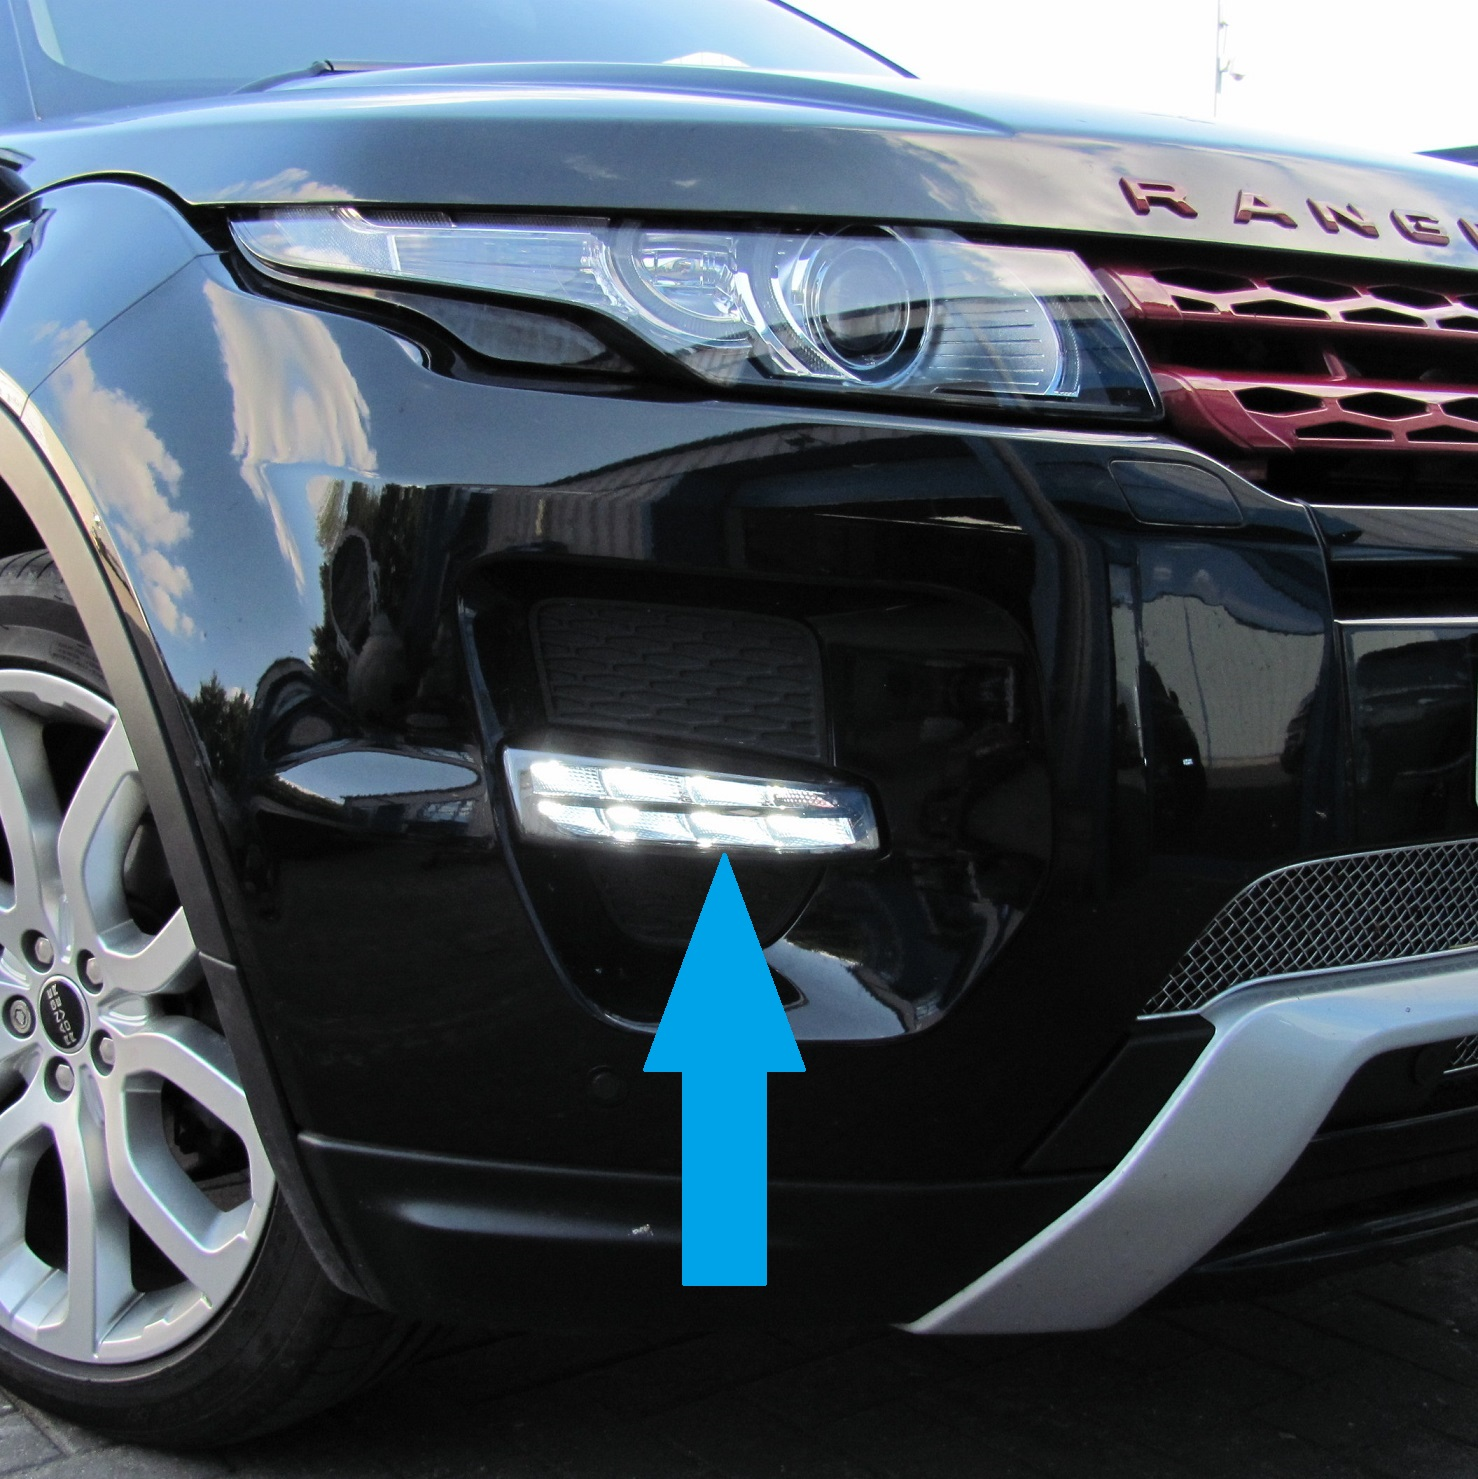 Range Rover Evoque Led Drl Front Fog Lamps Lights Upgrade Pure Wiring Diagrams Item Specifics